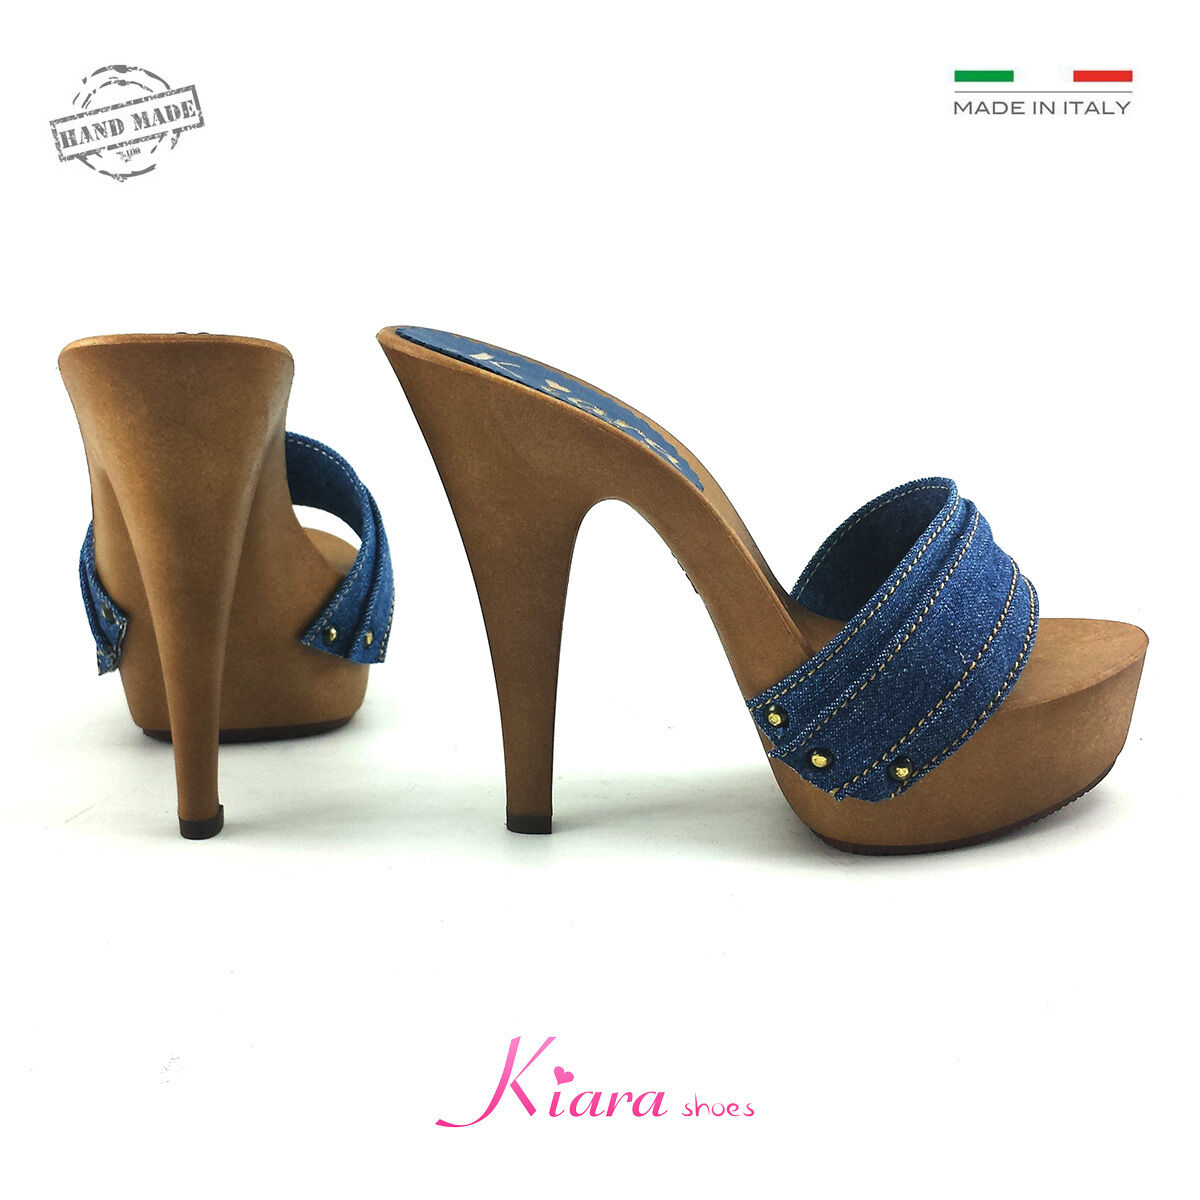 Zuecos Denim - Base Mou - Zapatos Made in Italy 35-36-37-38-39-40-41 - Talón 13